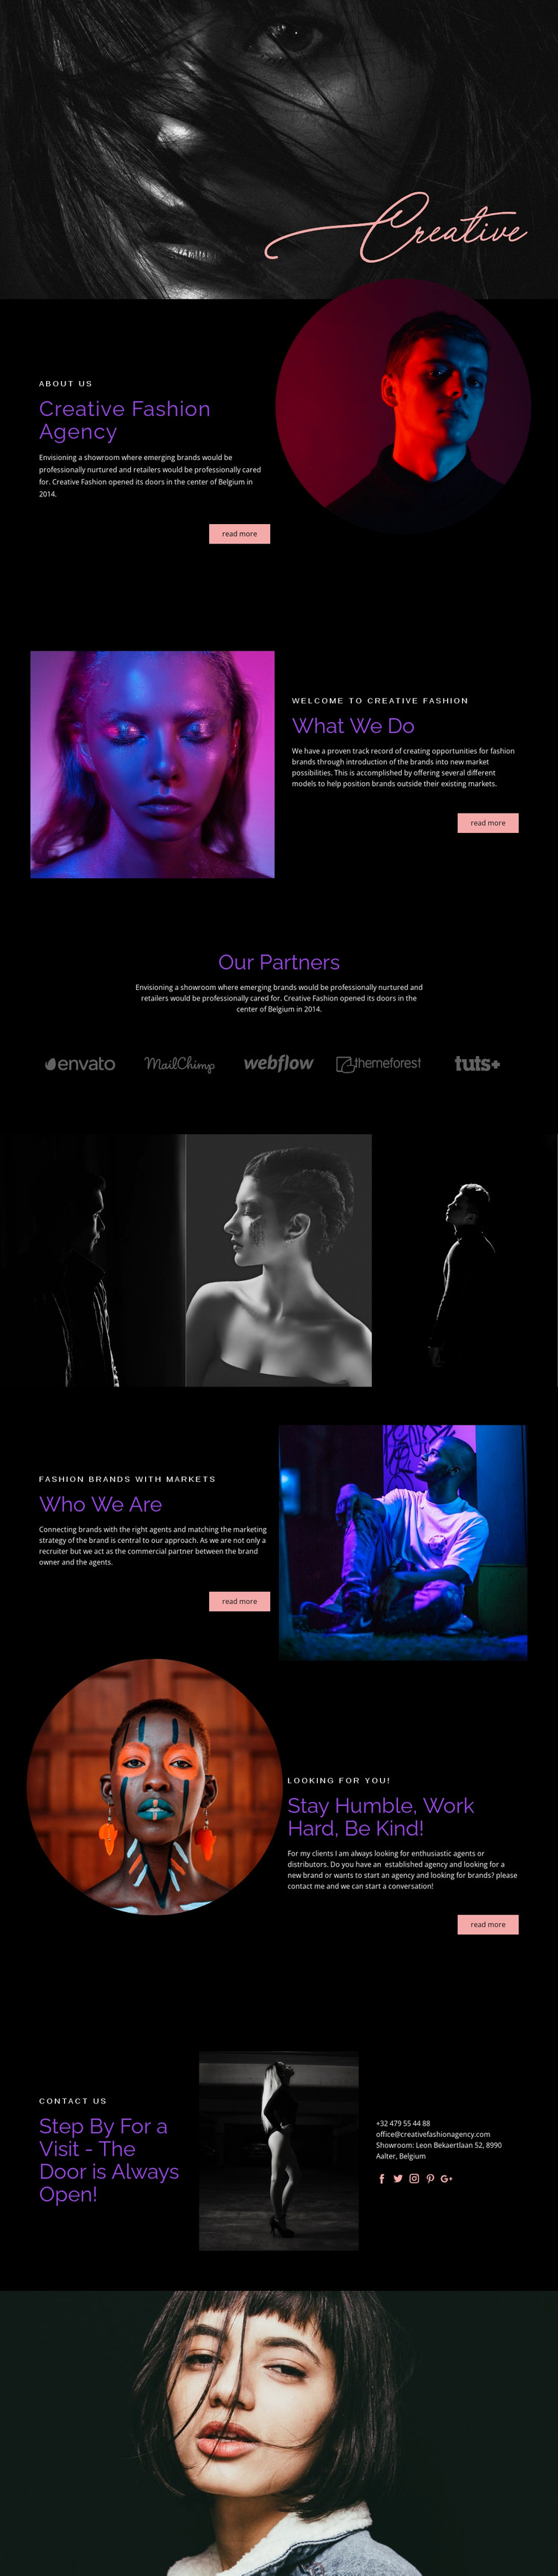 Creative Fashion Agency Web Design